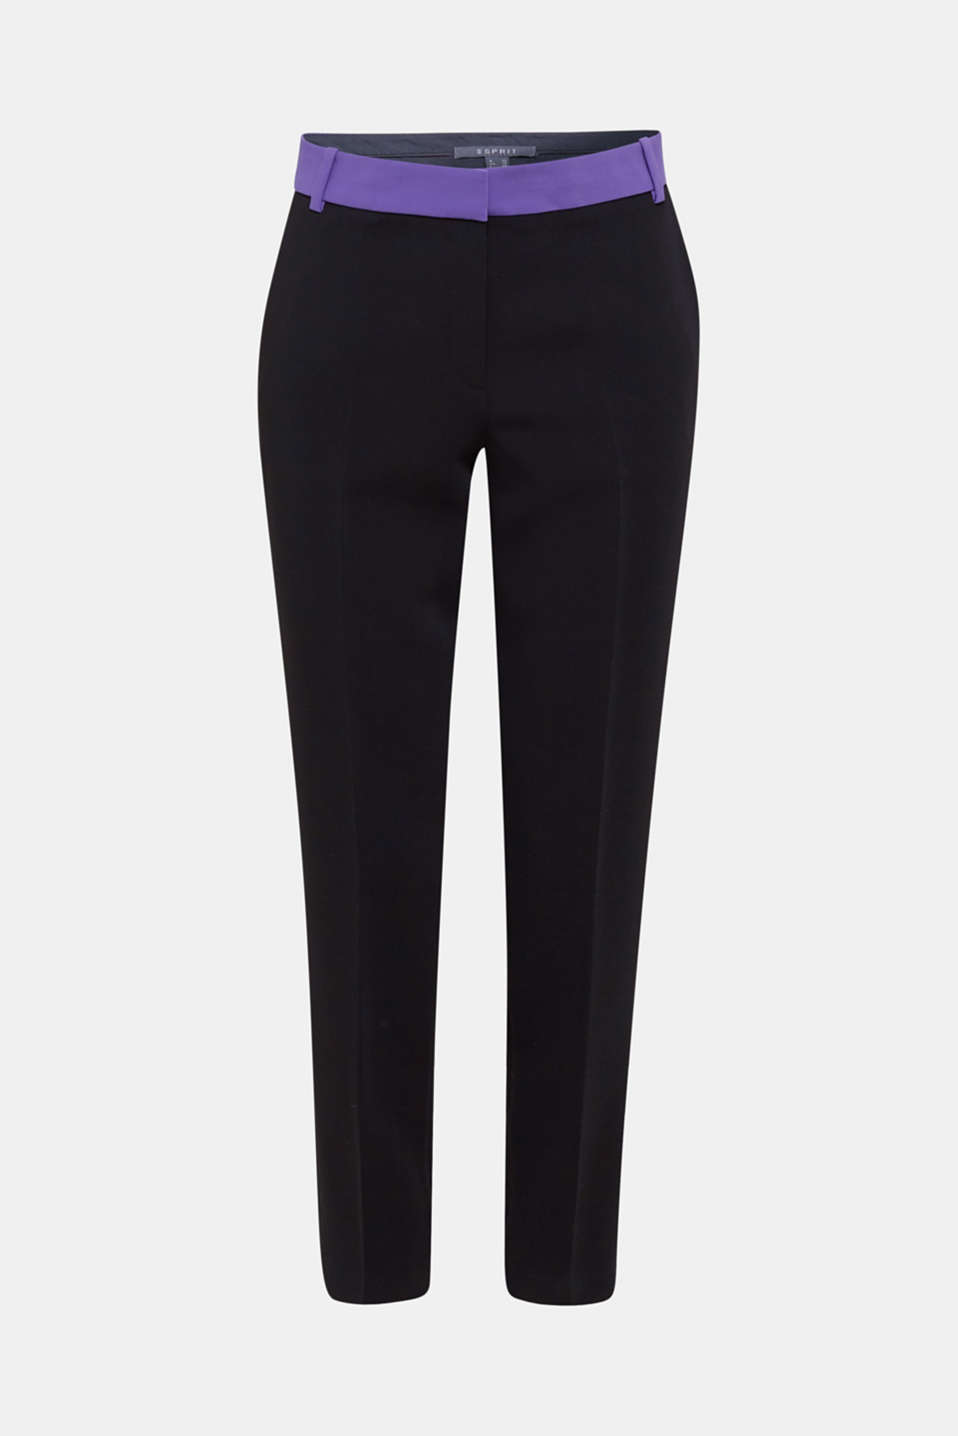 TECHNO TWILL mix + match stretch trousers, BLACK, detail image number 8